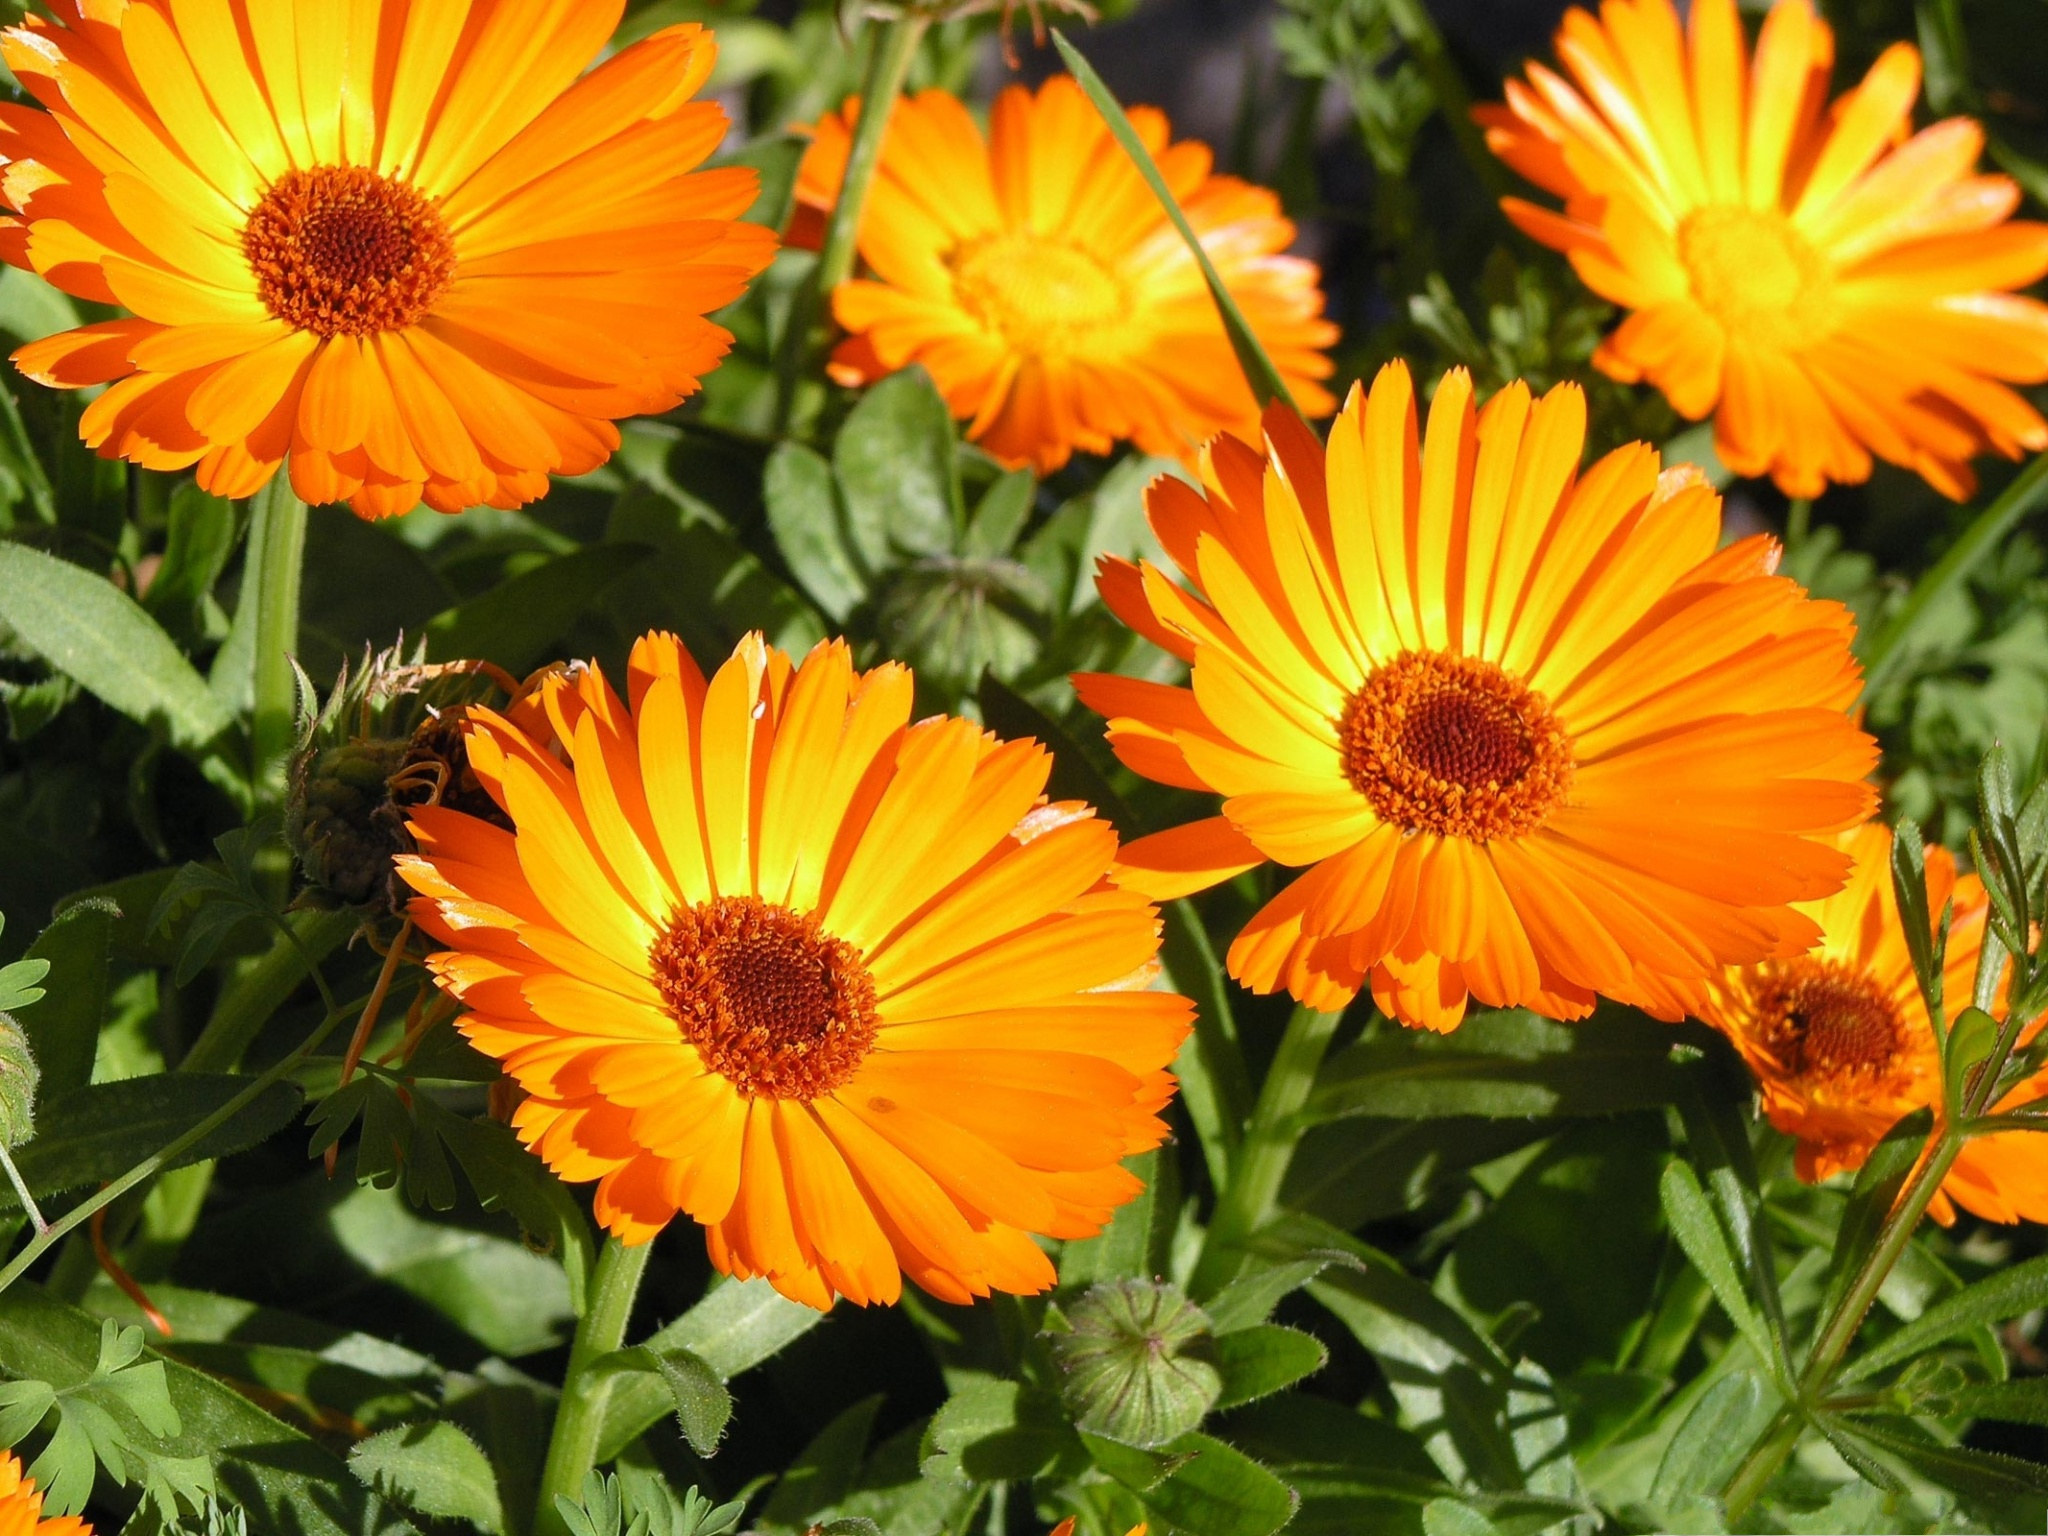 click to free download the wallpaper--Marigold Flower Image, Orange Flowers Under the Sun, Nice in Look 2048X1536 free wallpaper download